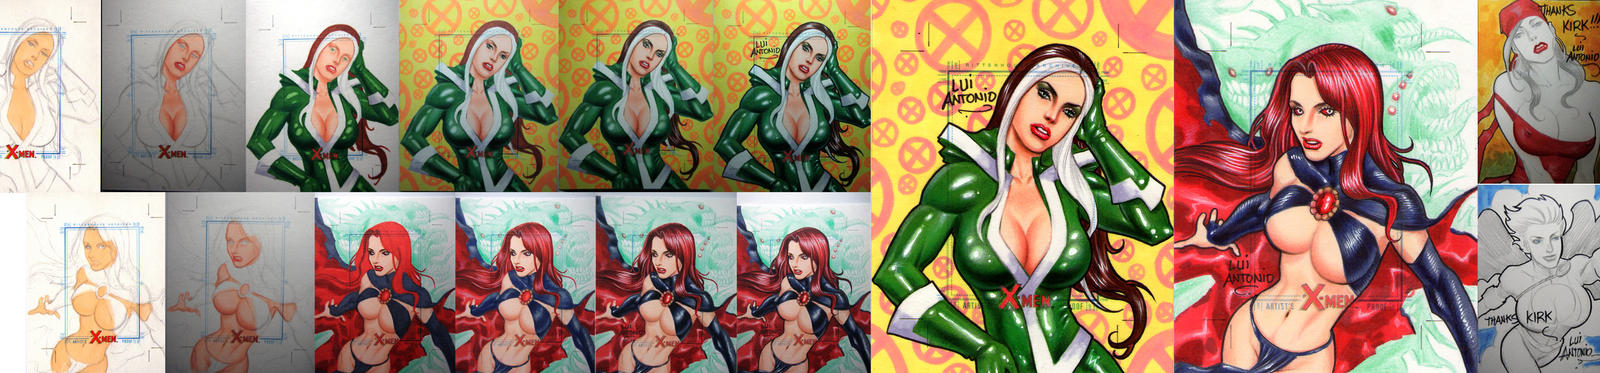 Rogue and Goblin Queen by stompboxxx